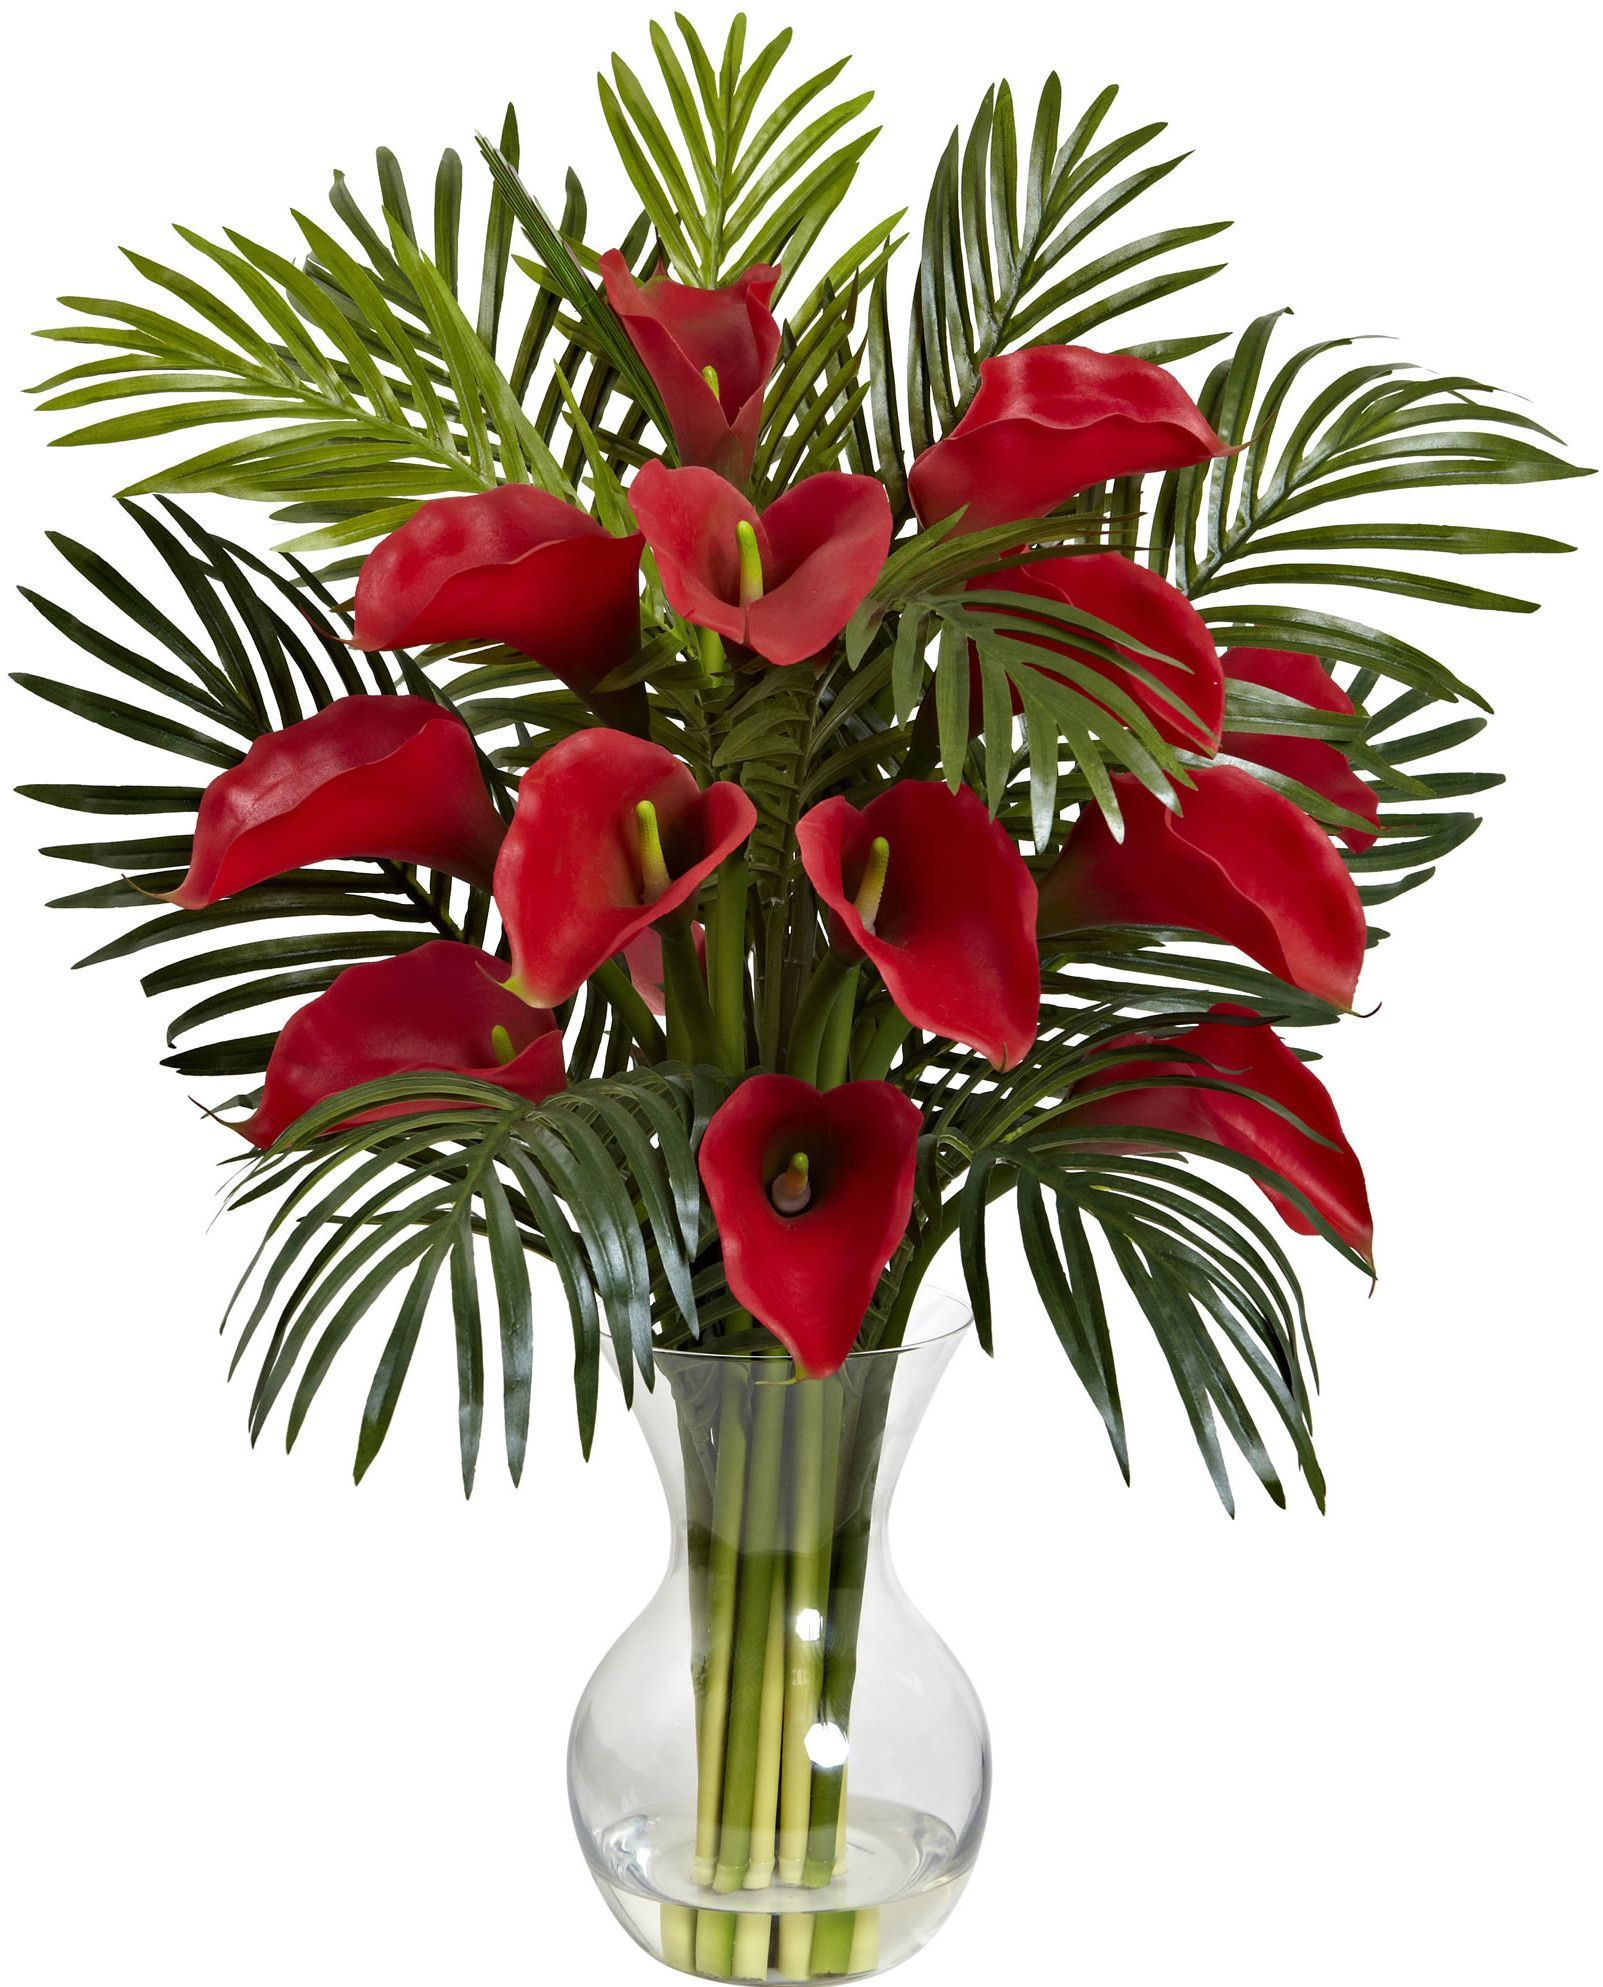 Flower Arrangements Calla Lily And Areca Palm Silk Flower Arrangement With Vase